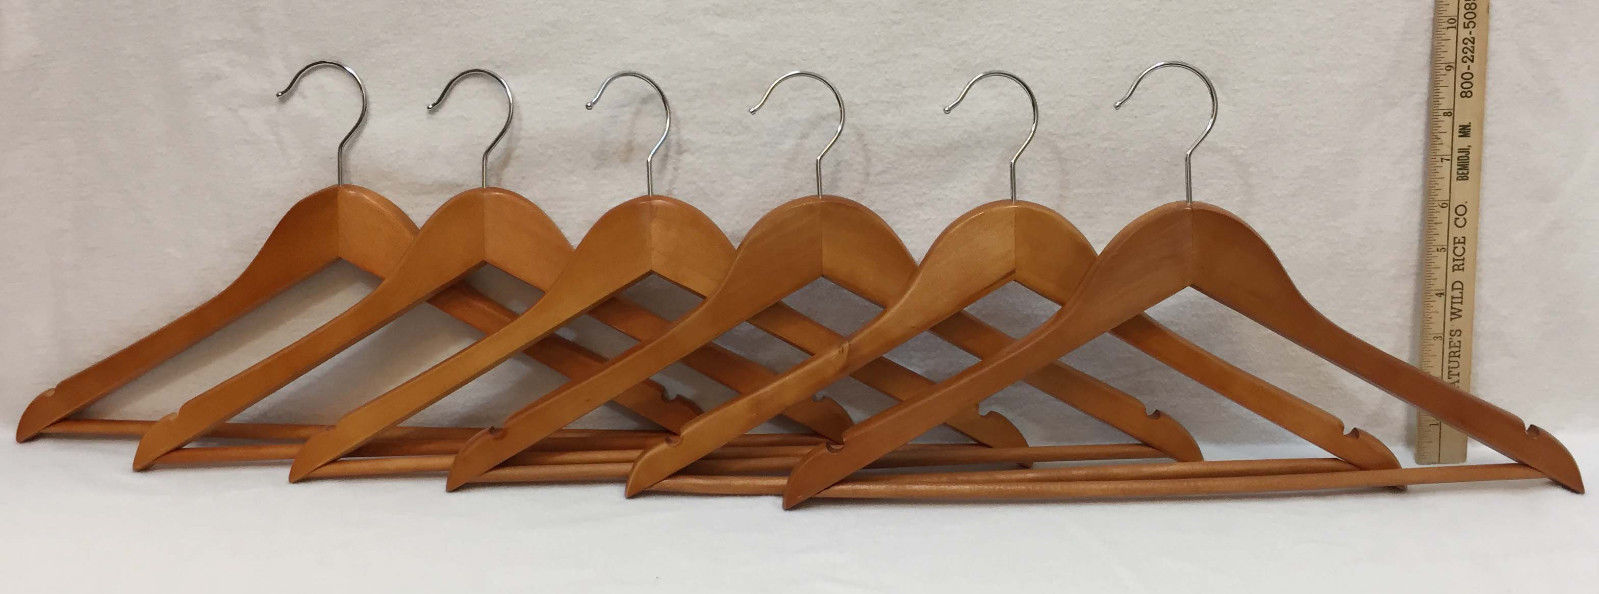 Clothes Hangers Wood Wooden Set 6 Notched Holds Tops w/ Straps Pant Trouser Rod - $14.84